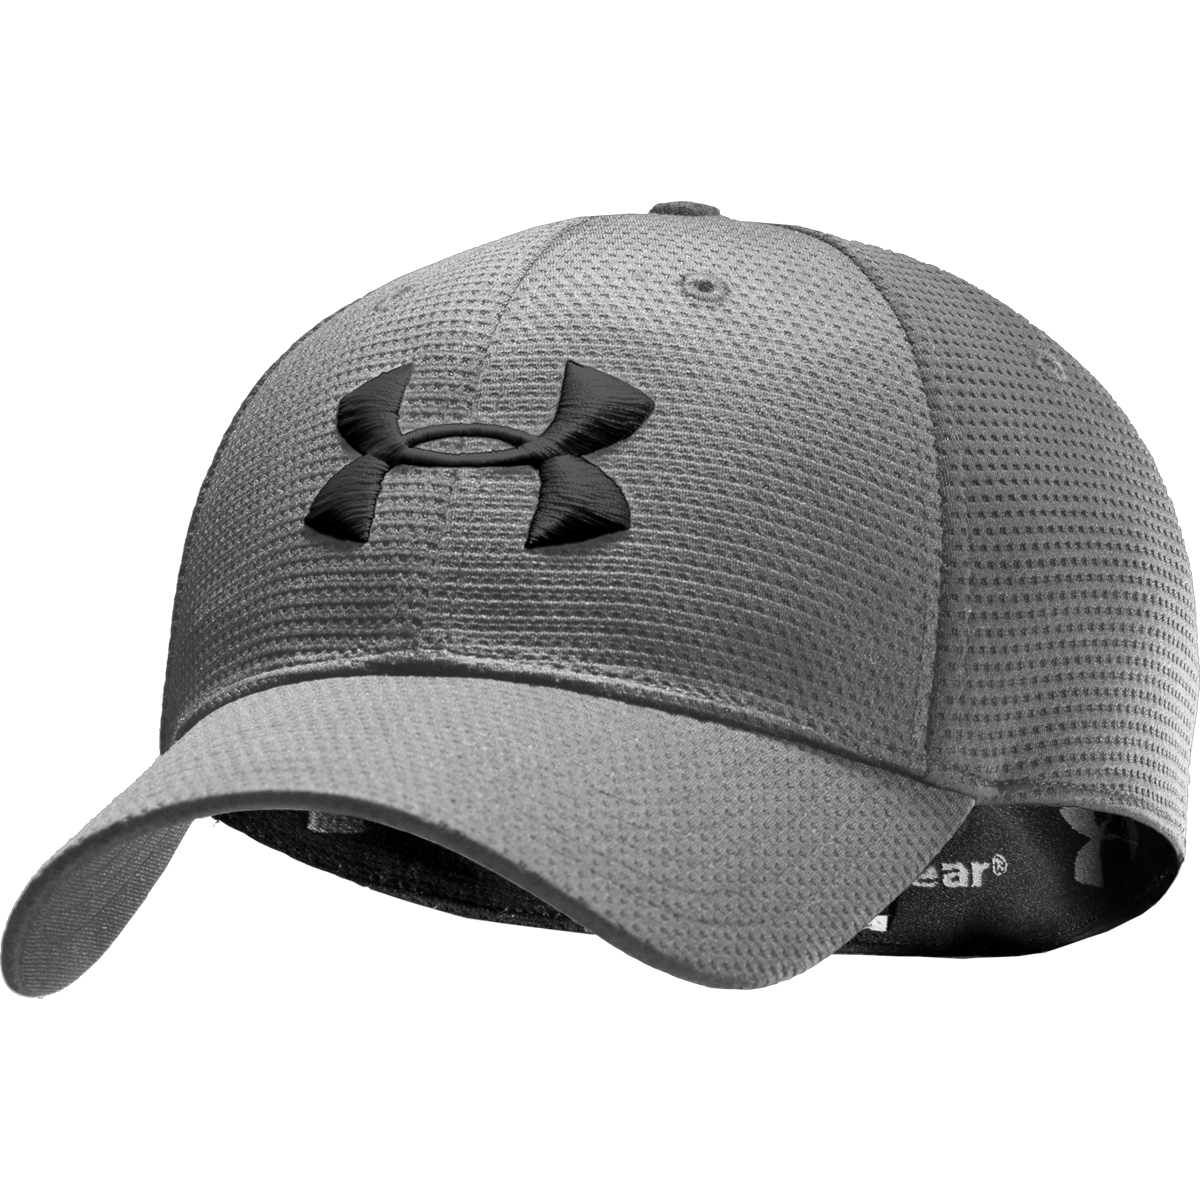 Caterpillar hat png. Under armour men s